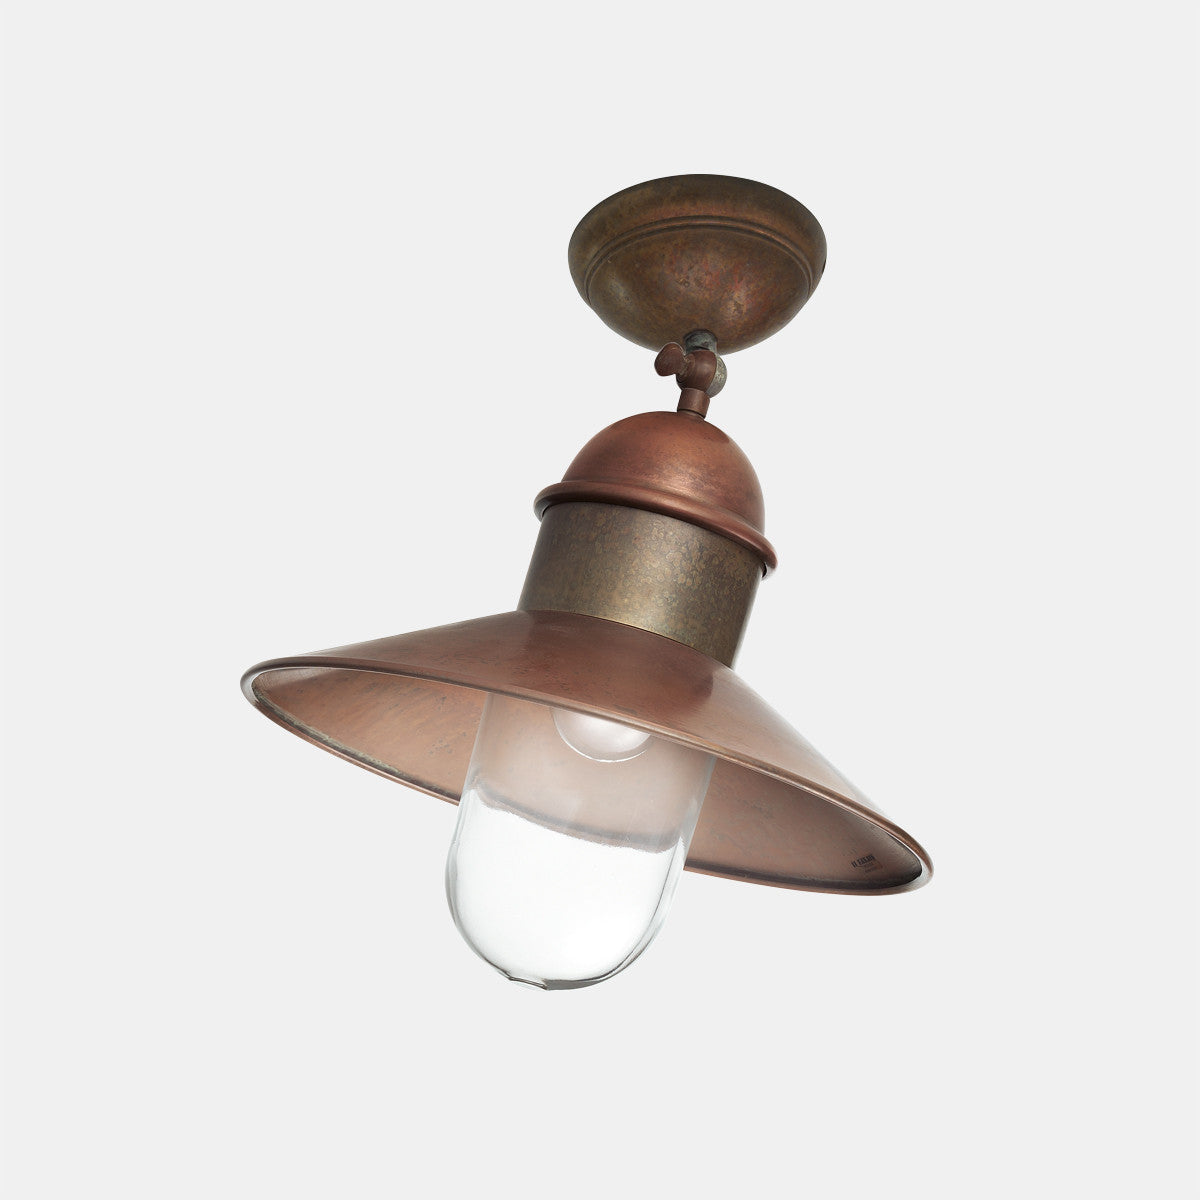 BORGO Outdoor Ceiling Light 244.03 | touchGOODS